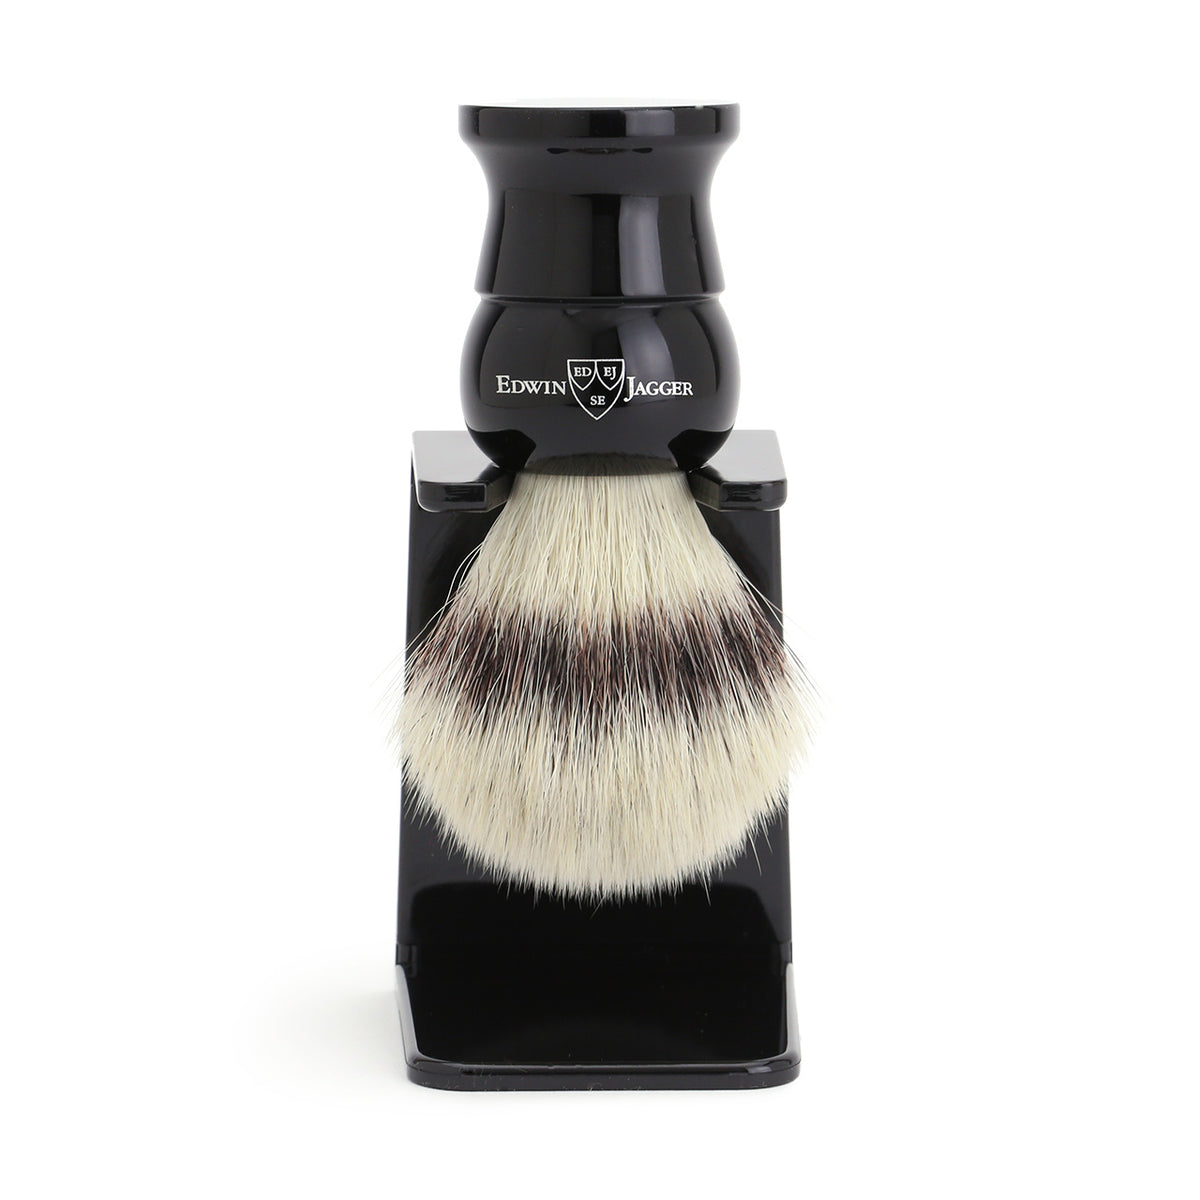 Edwin Jagger Imitation Ebony Shaving Brush Synthetic Silver Tip with Drip Stand - Medium